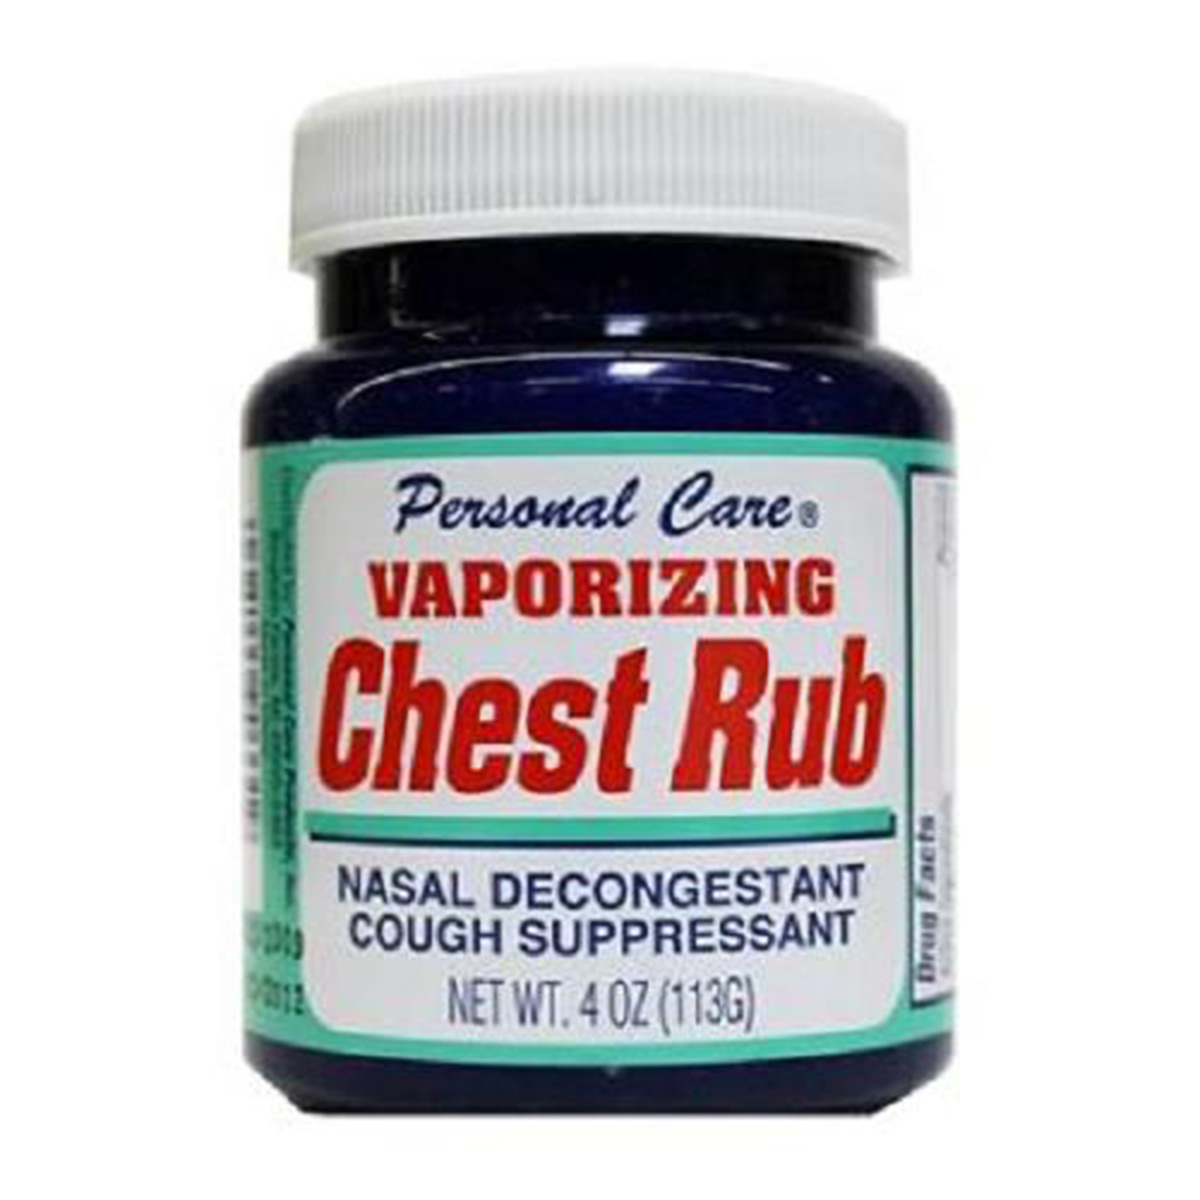 PERSONAL CARE PRODUCTS Vapor Chest Rub, 0.31 Pound